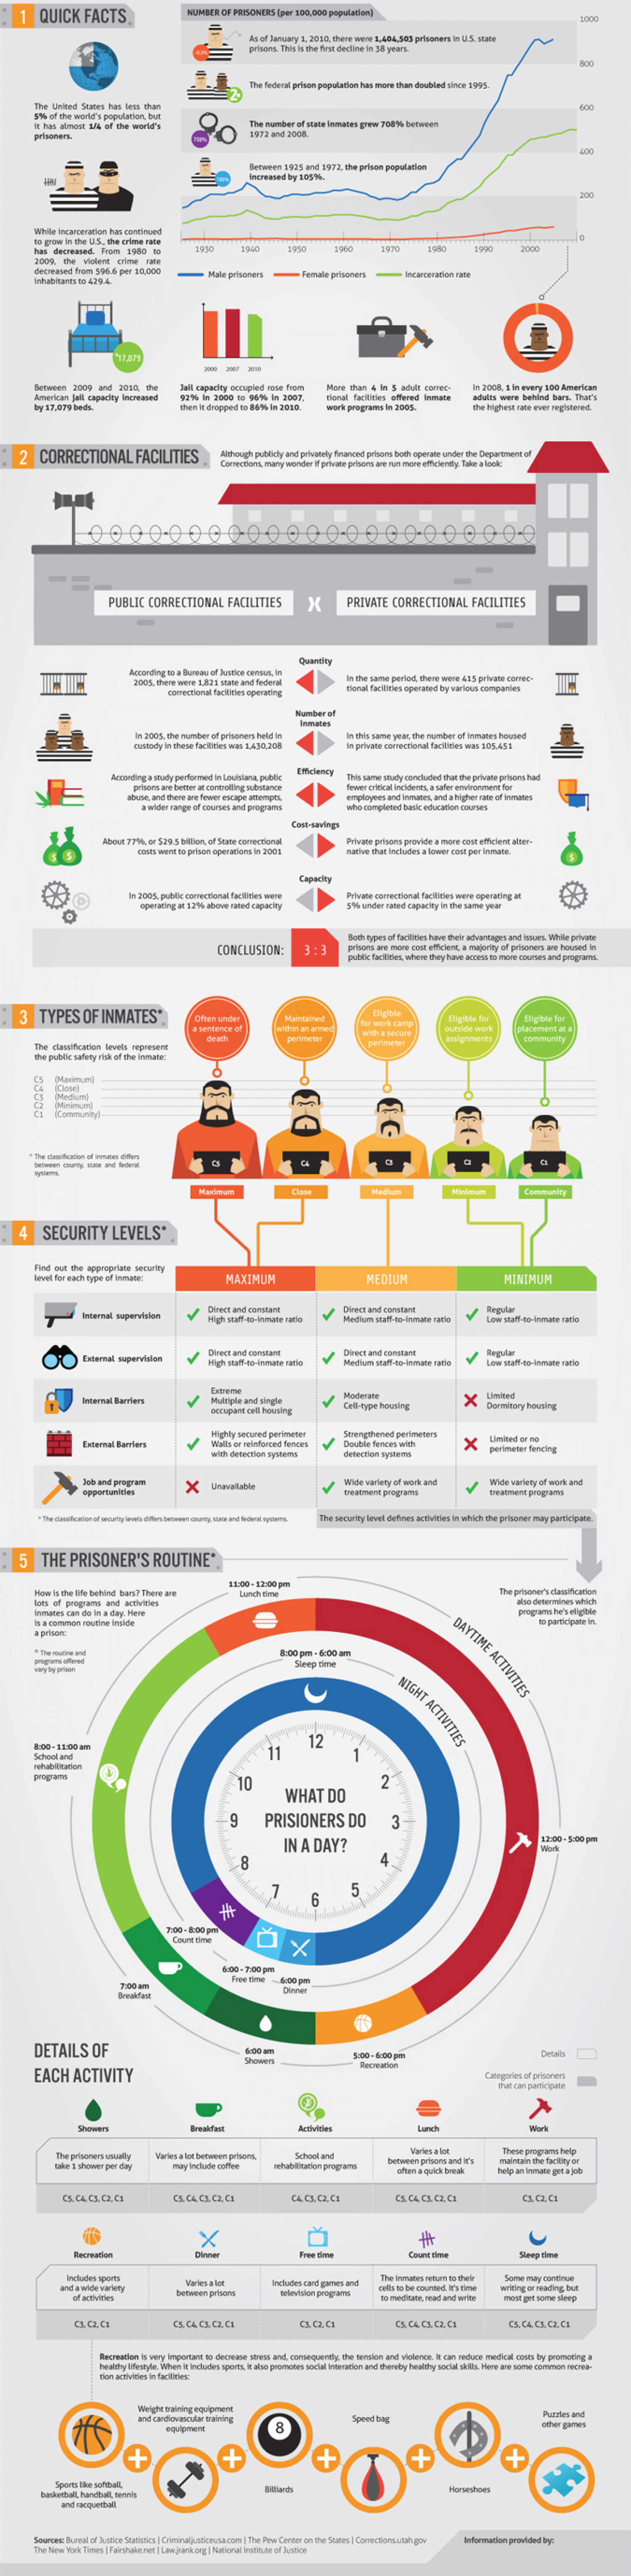 A Day In The Life of a Prisoner Infographic